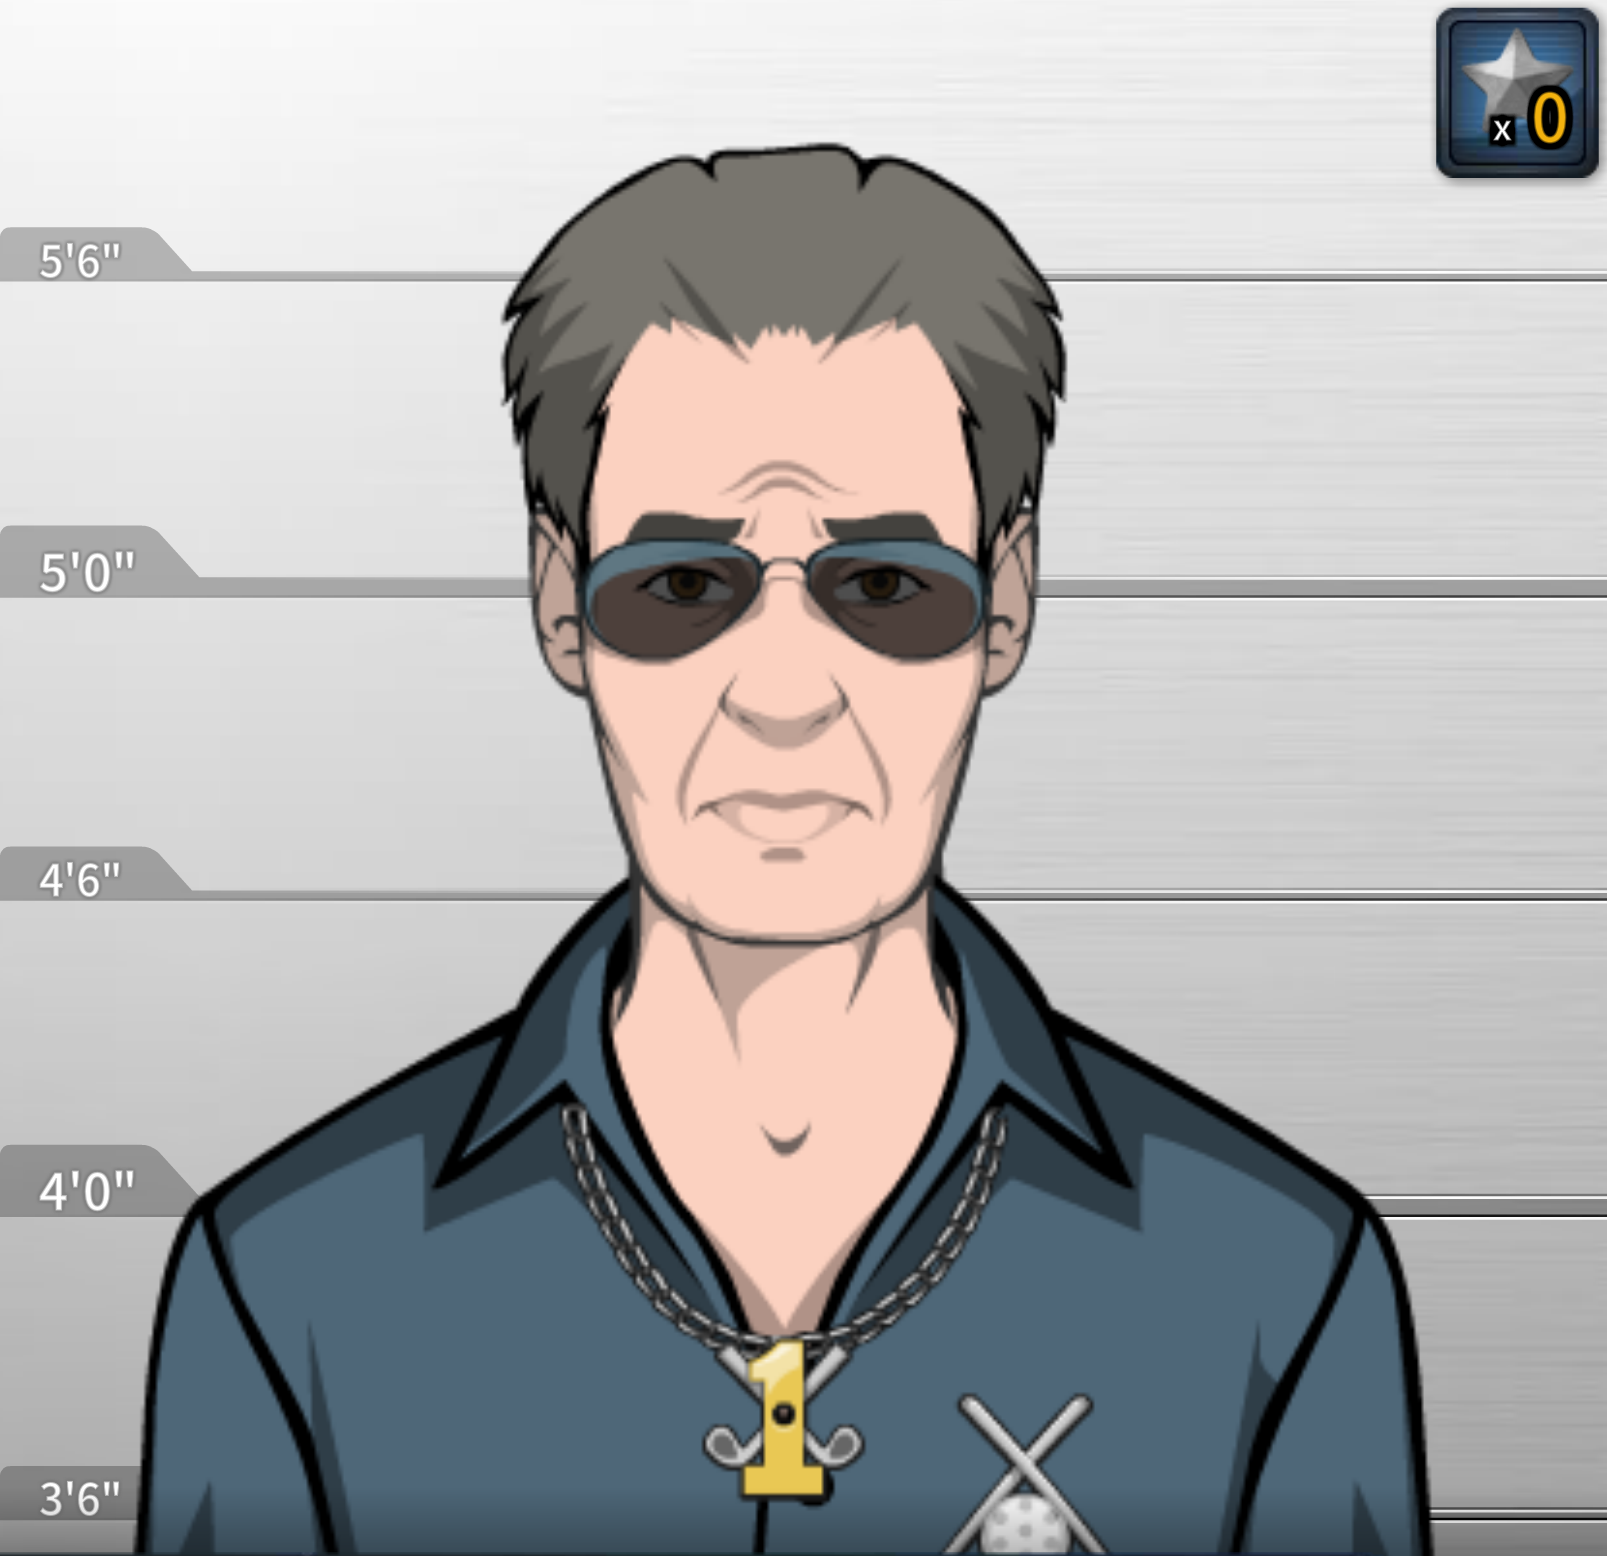 Case Paul paul oaster | criminal case wiki | fandom poweredwikia